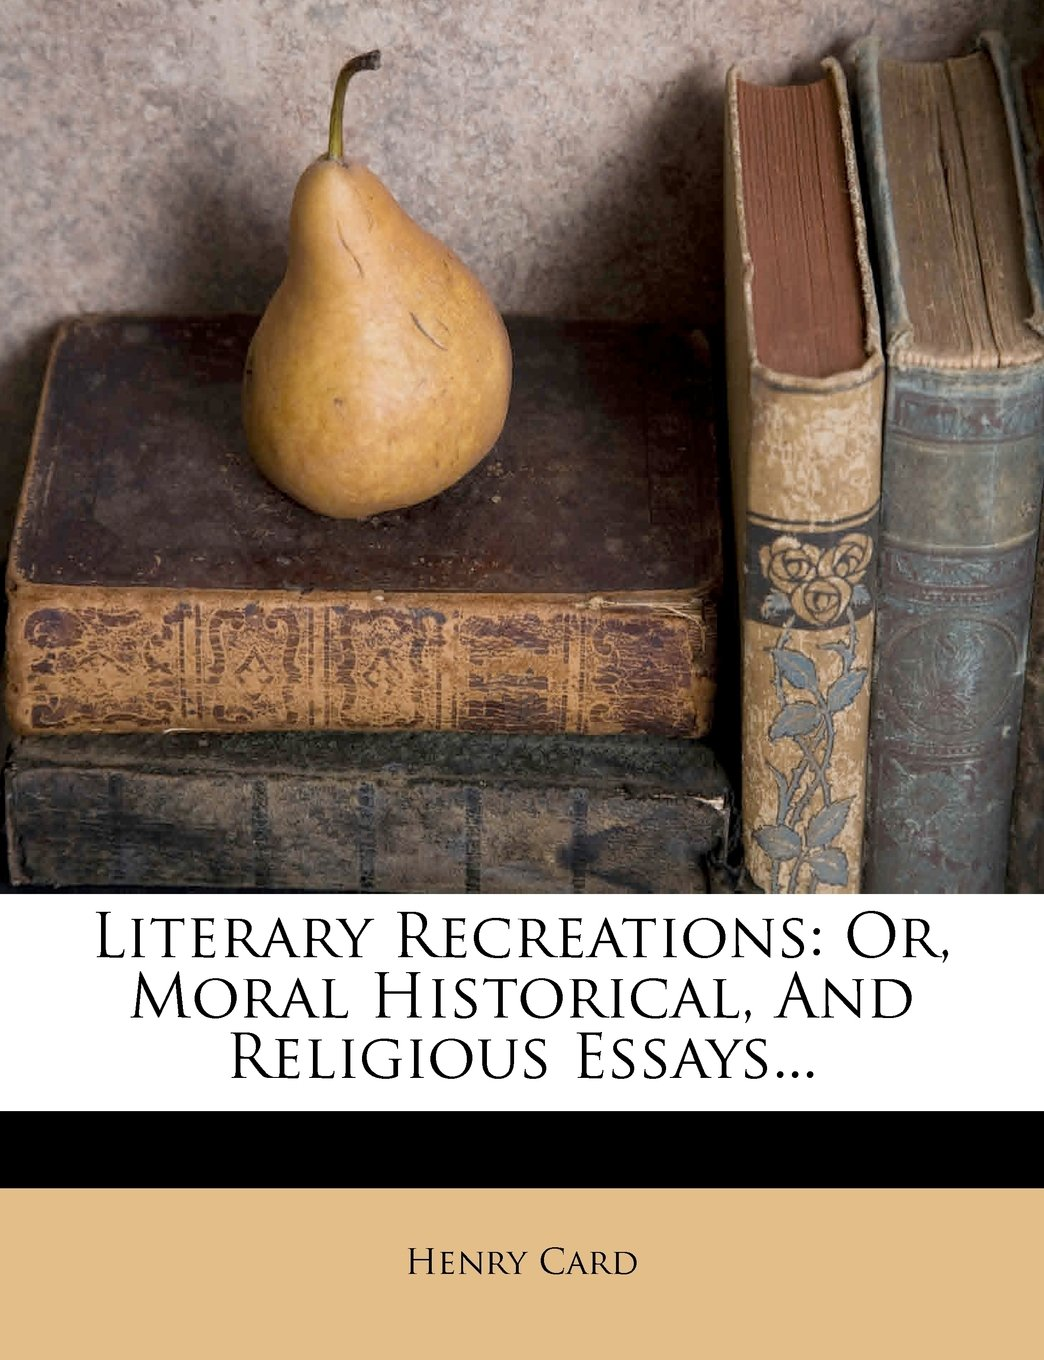 Literary Recreations: Or, Moral Historical, and Religious Essays... pdf epub